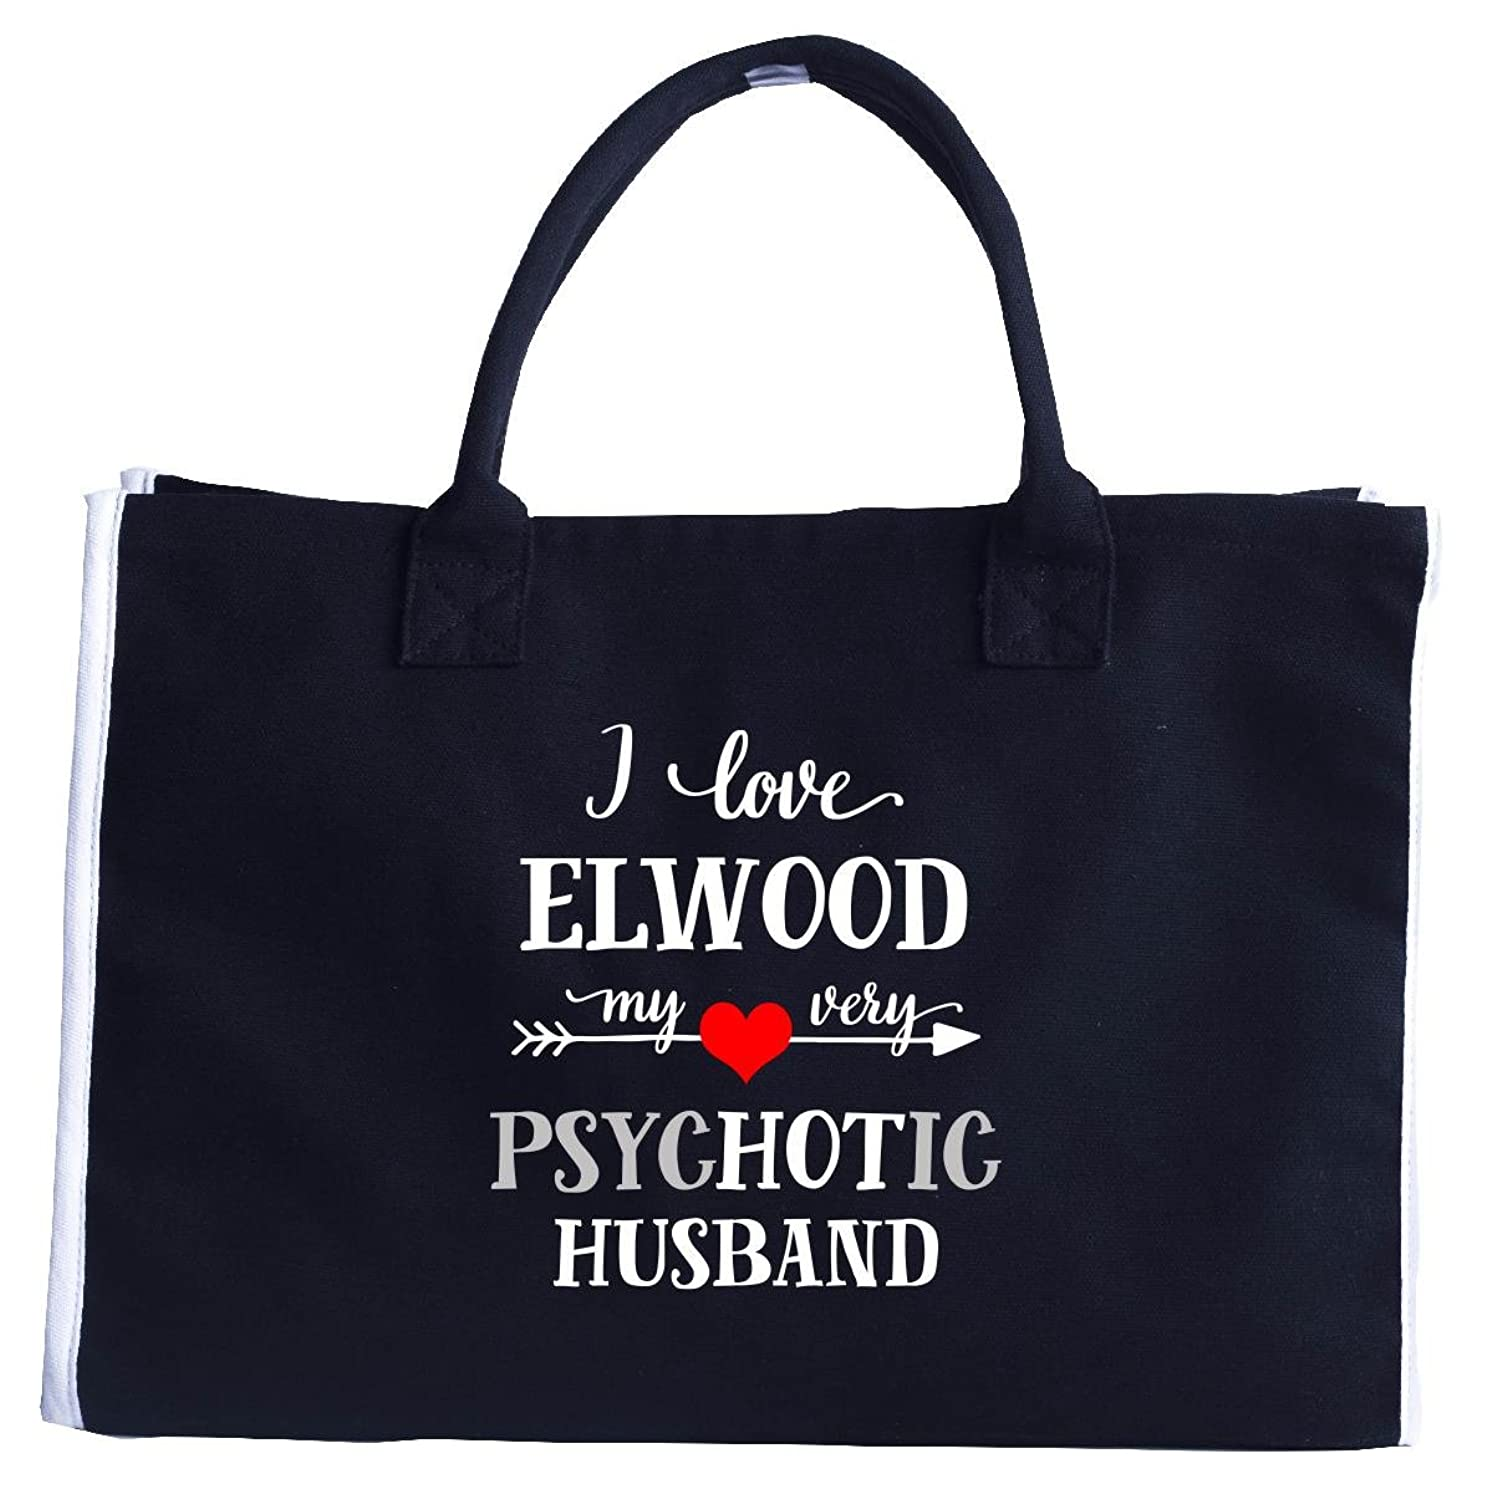 I Love Elwood My Very Psychotic Husband. Gift For Her - Fashion Tote Bag